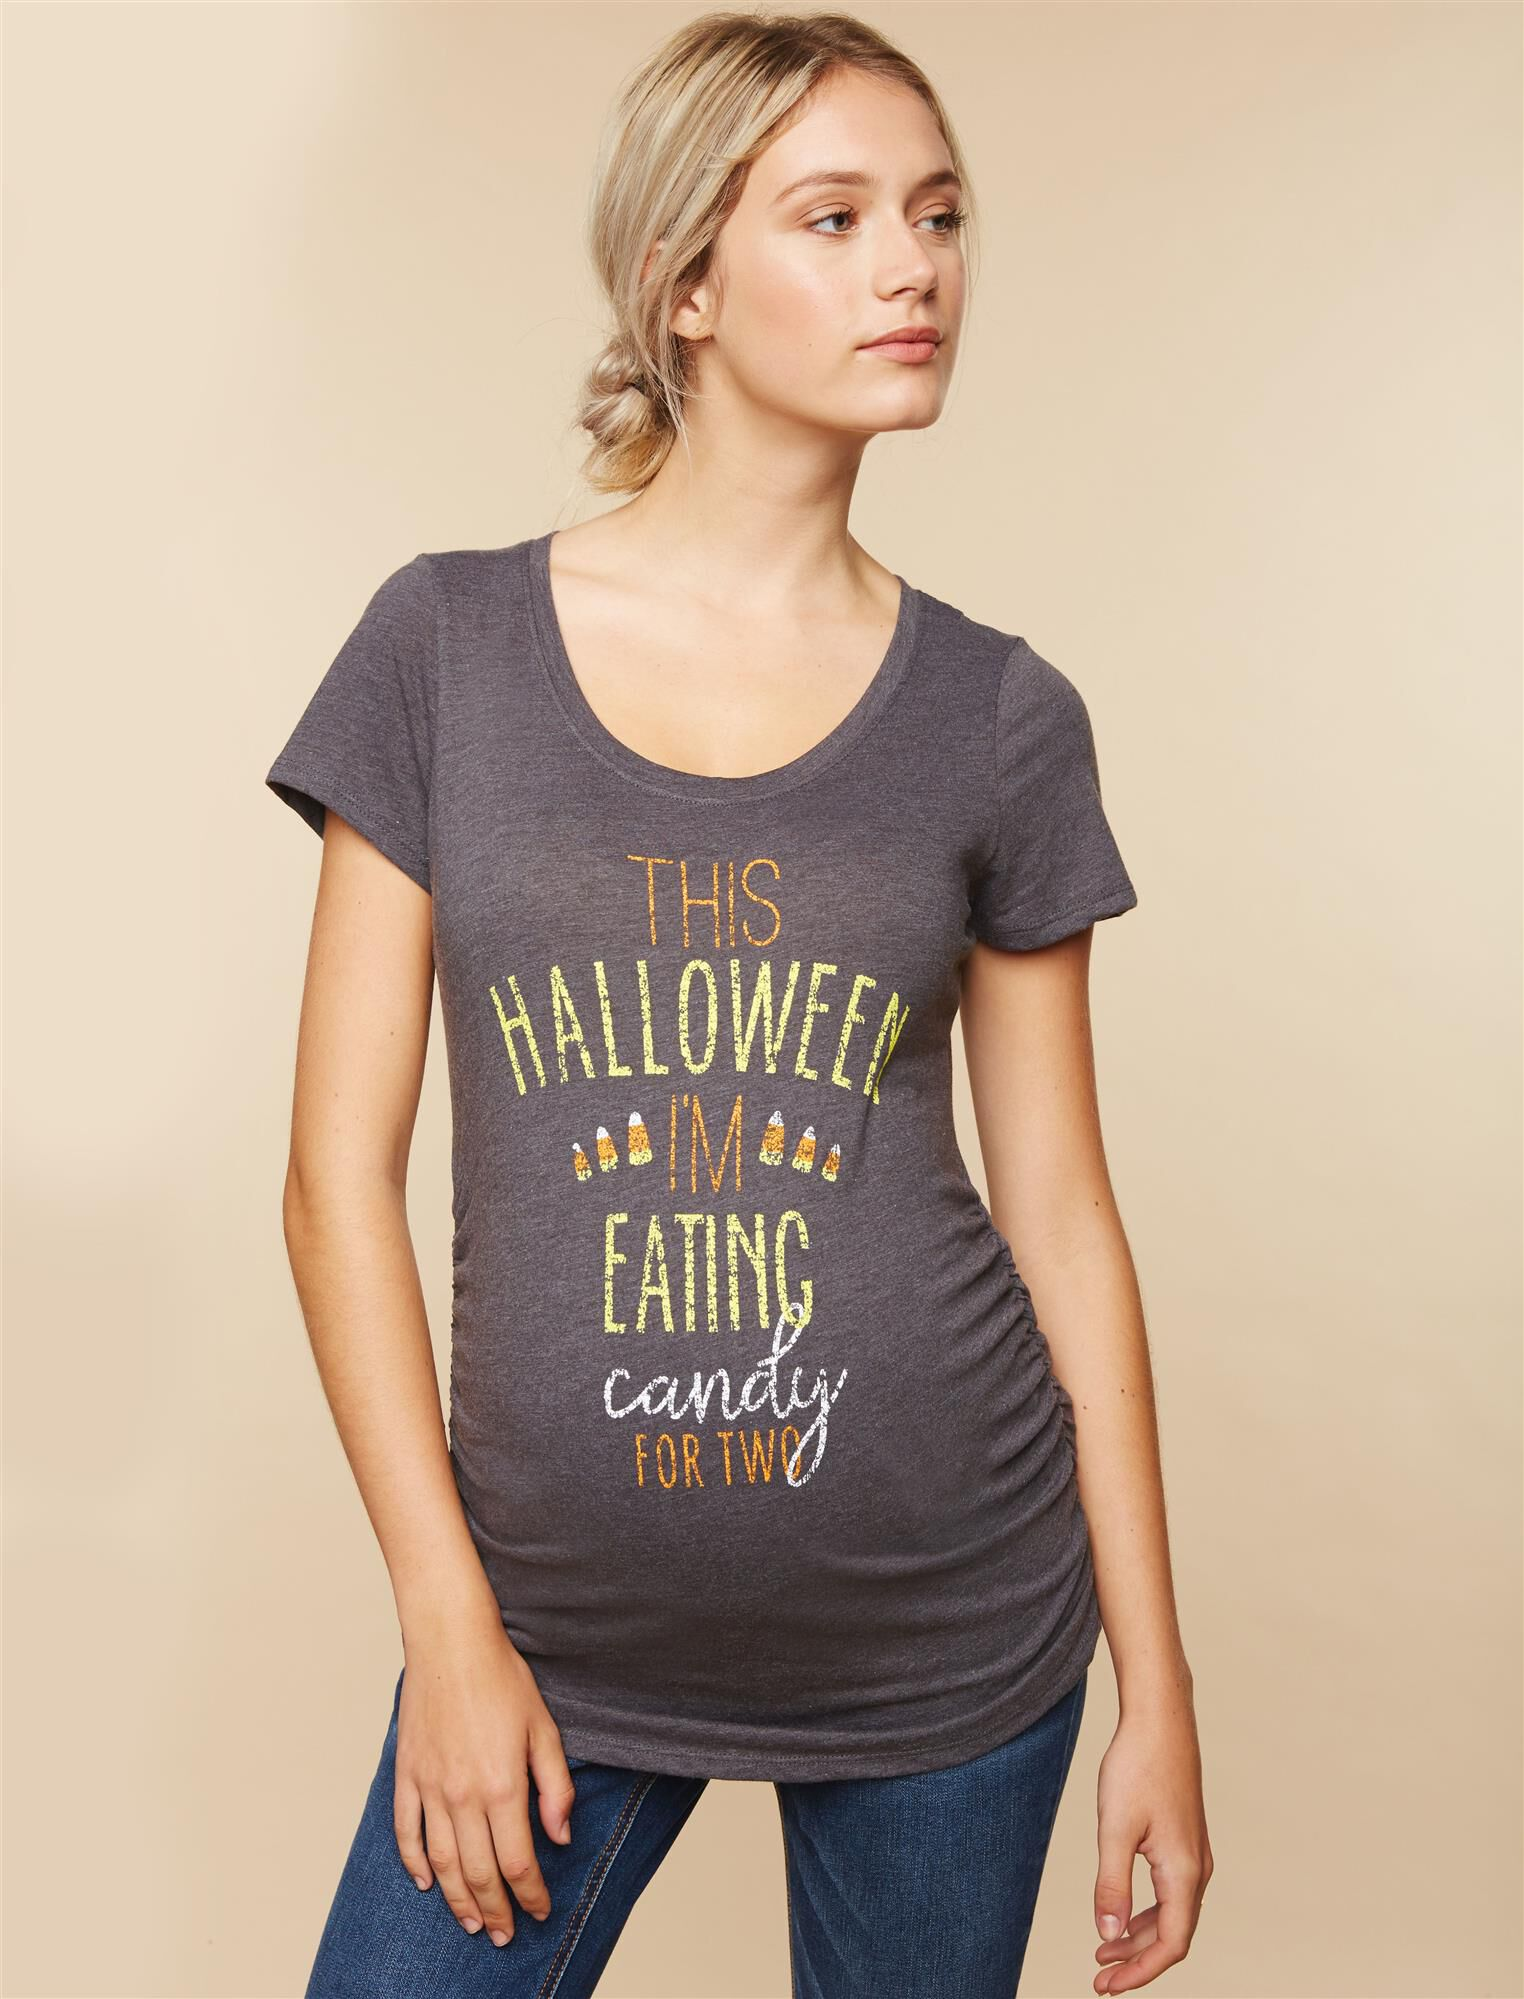 Eating Candy For Two Maternity Tee